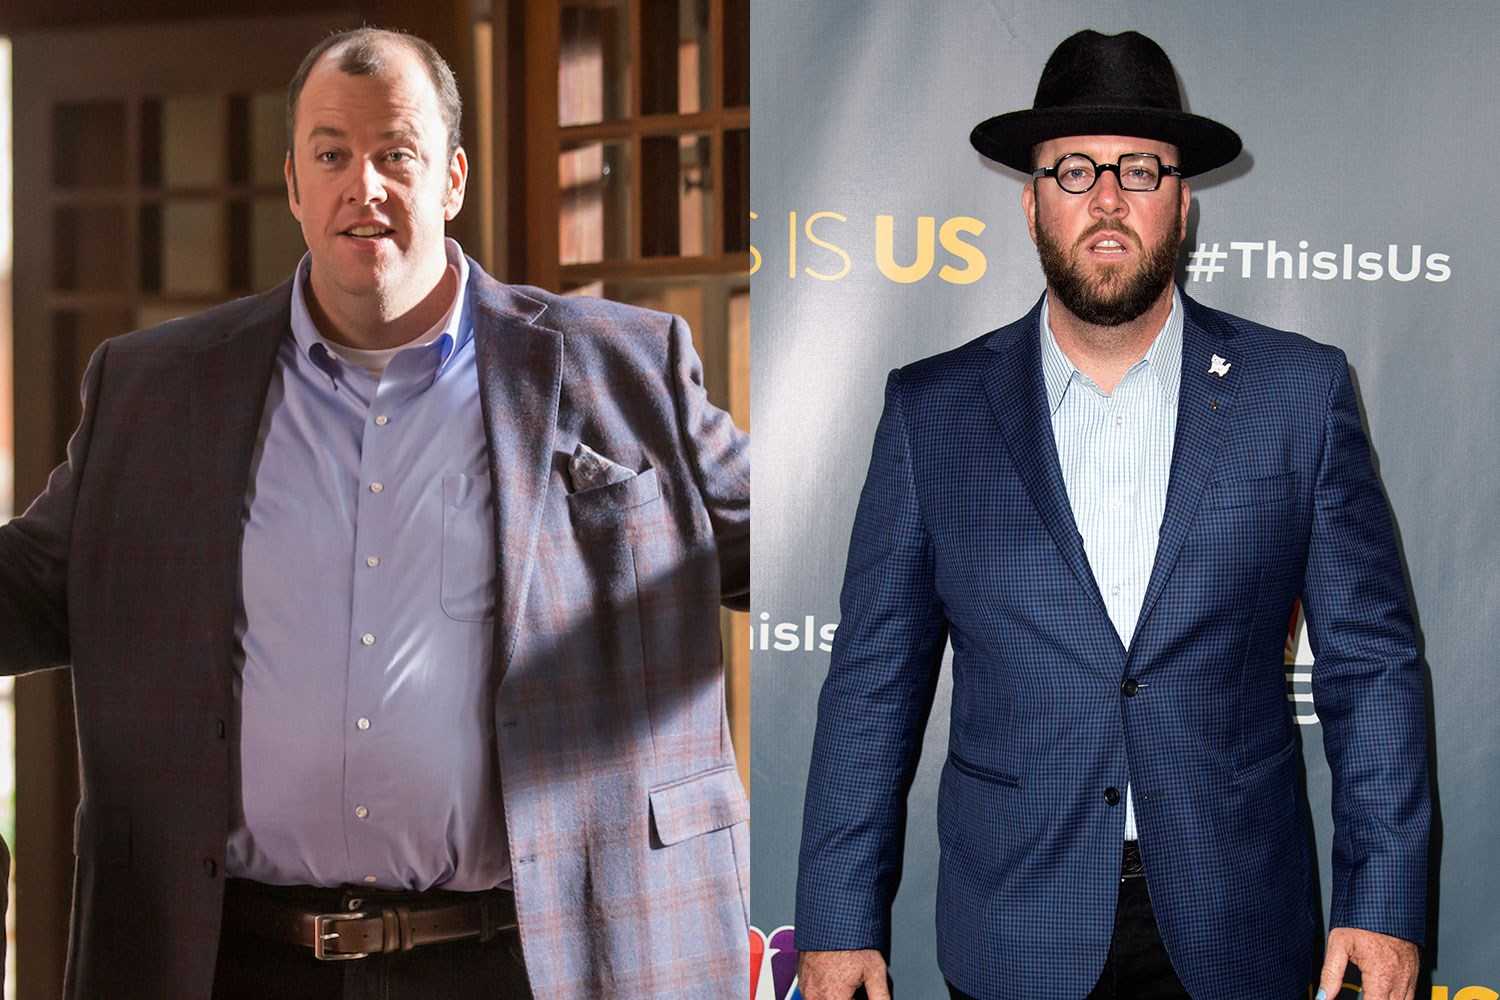 "Chris Sullivan, who plays the very lovable Toby on *This Is Us*, [wears a fat suit for the role](http://pagesix.com/2017/02/07/surprise-chris-sullivan-from-this-is-us-wears-a-fat-suit/|target=""_blank"")! The set secret was revealed when a picture of Chris IRL surfaced on the web, and everyone noticed he looked very different."